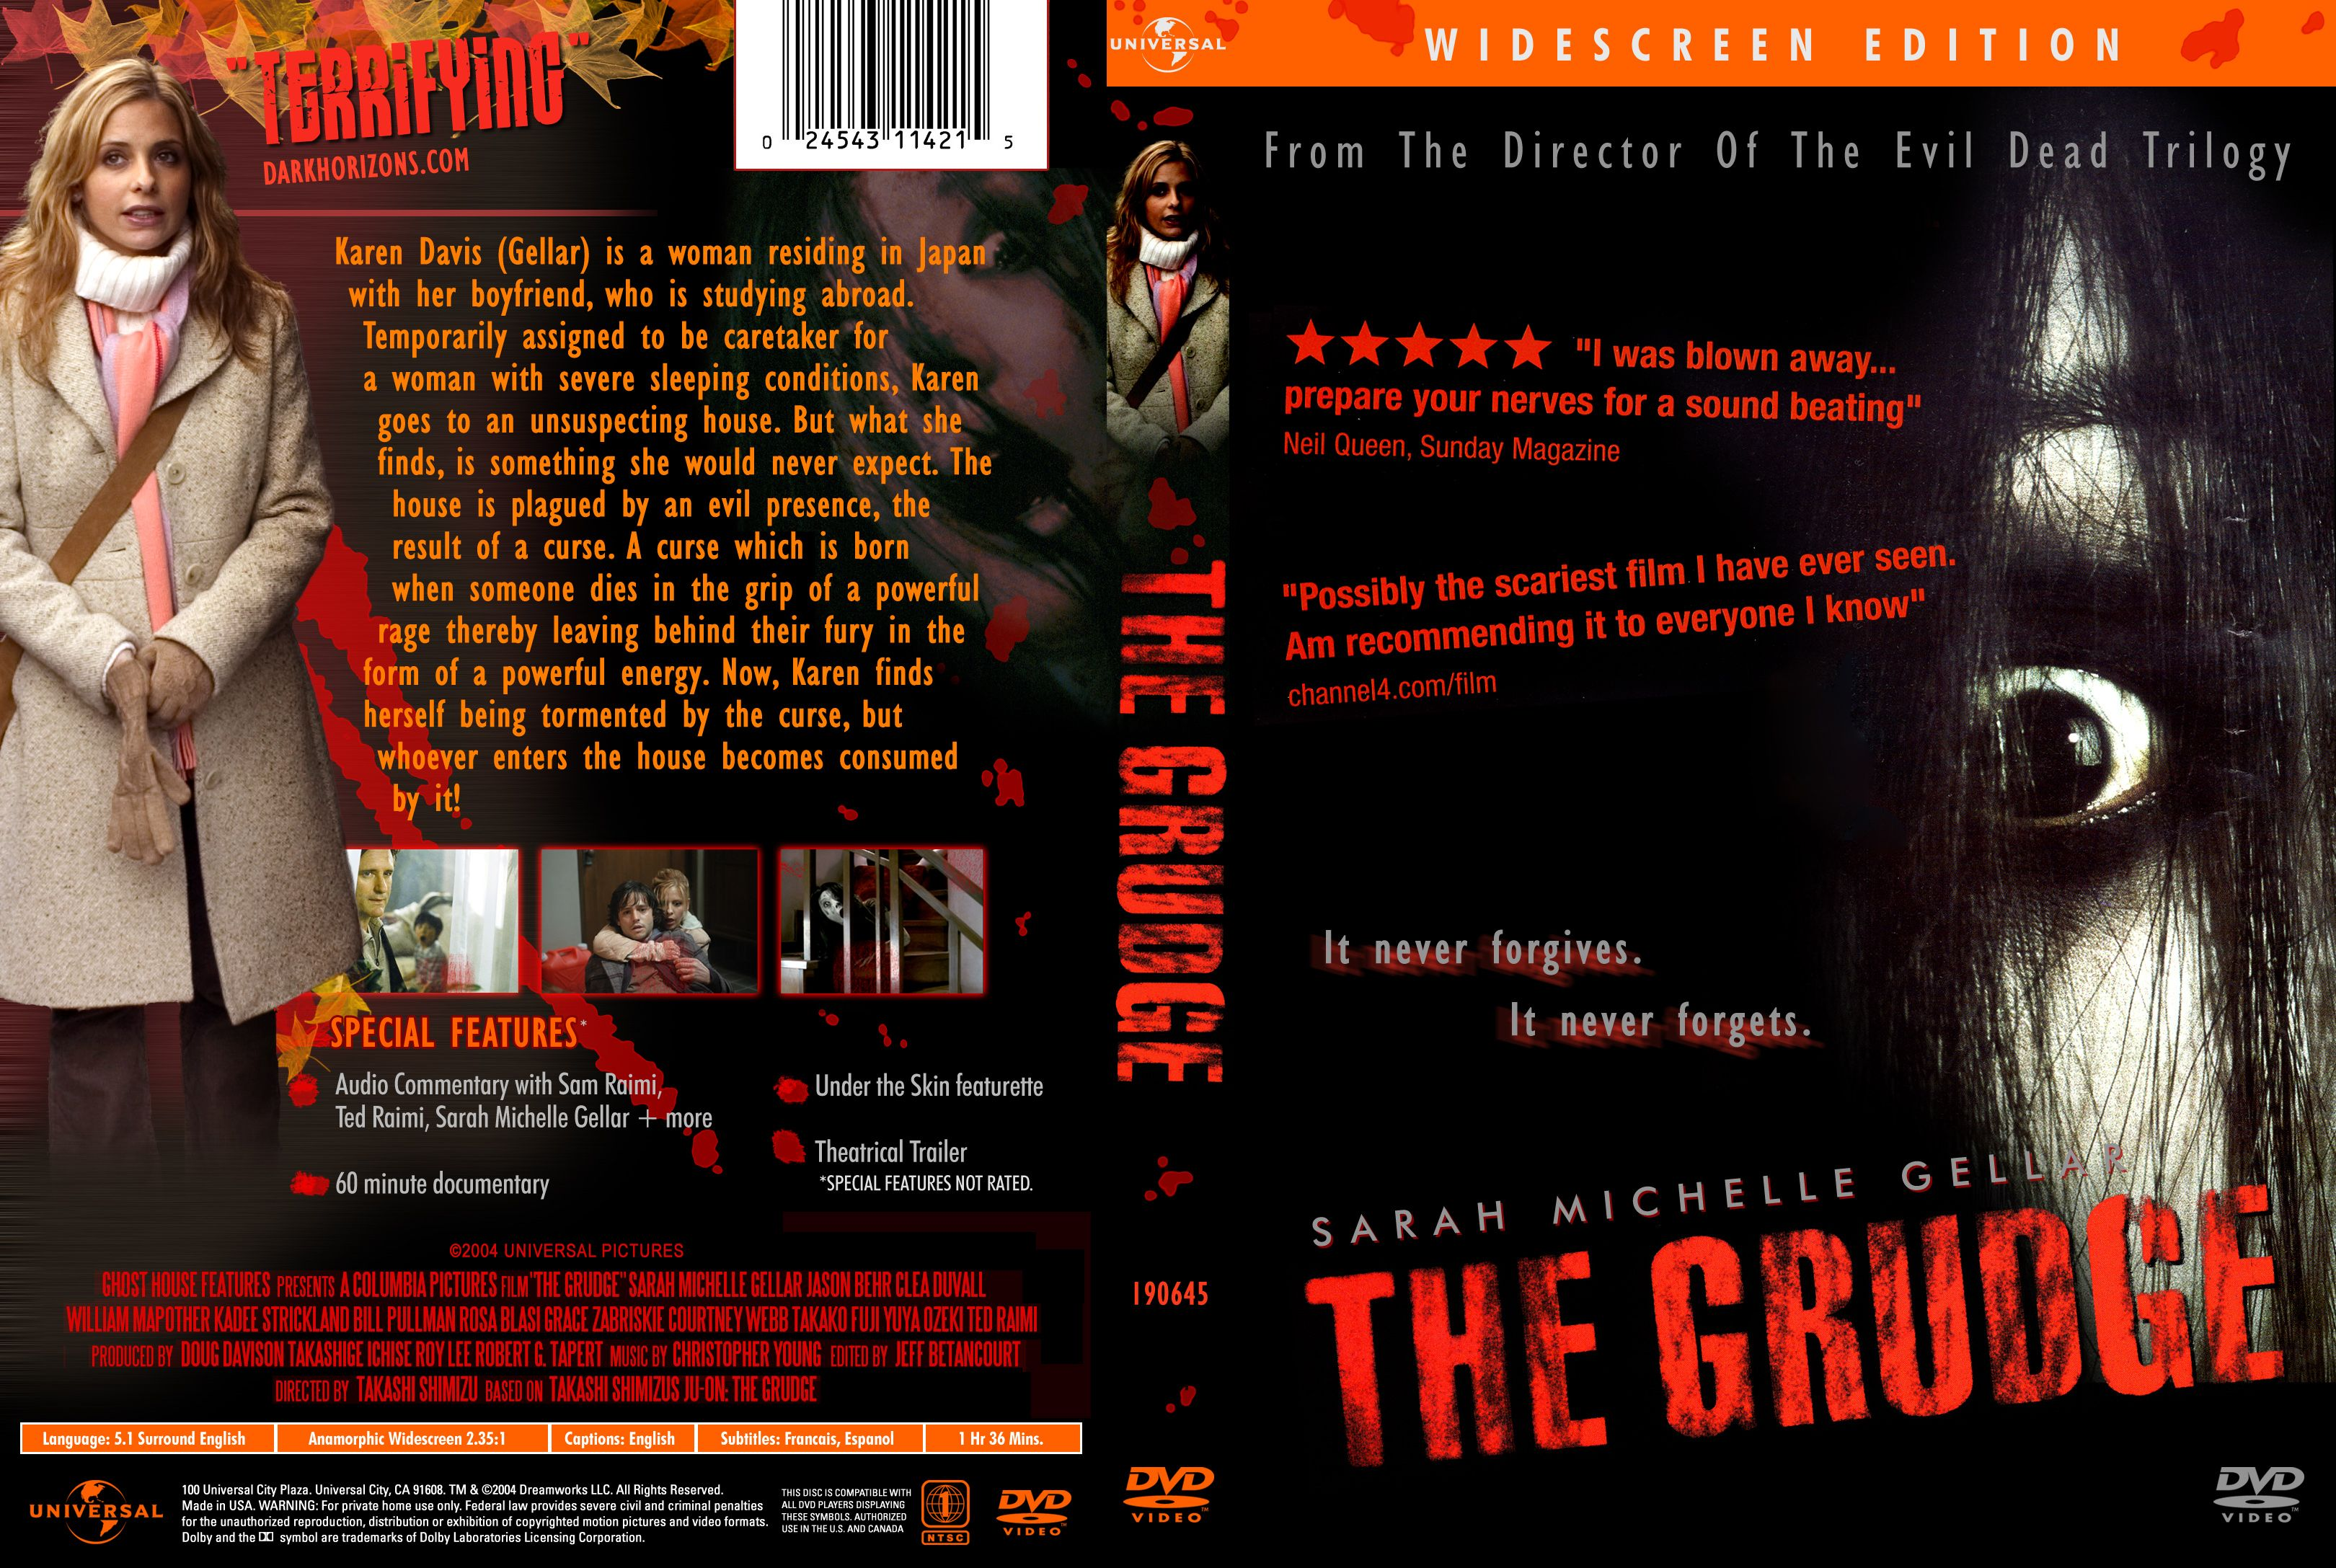 The Grudge 2004 Misc Dvd Dvd Covers Cover Century Over 500 000 Album Art Covers For Free